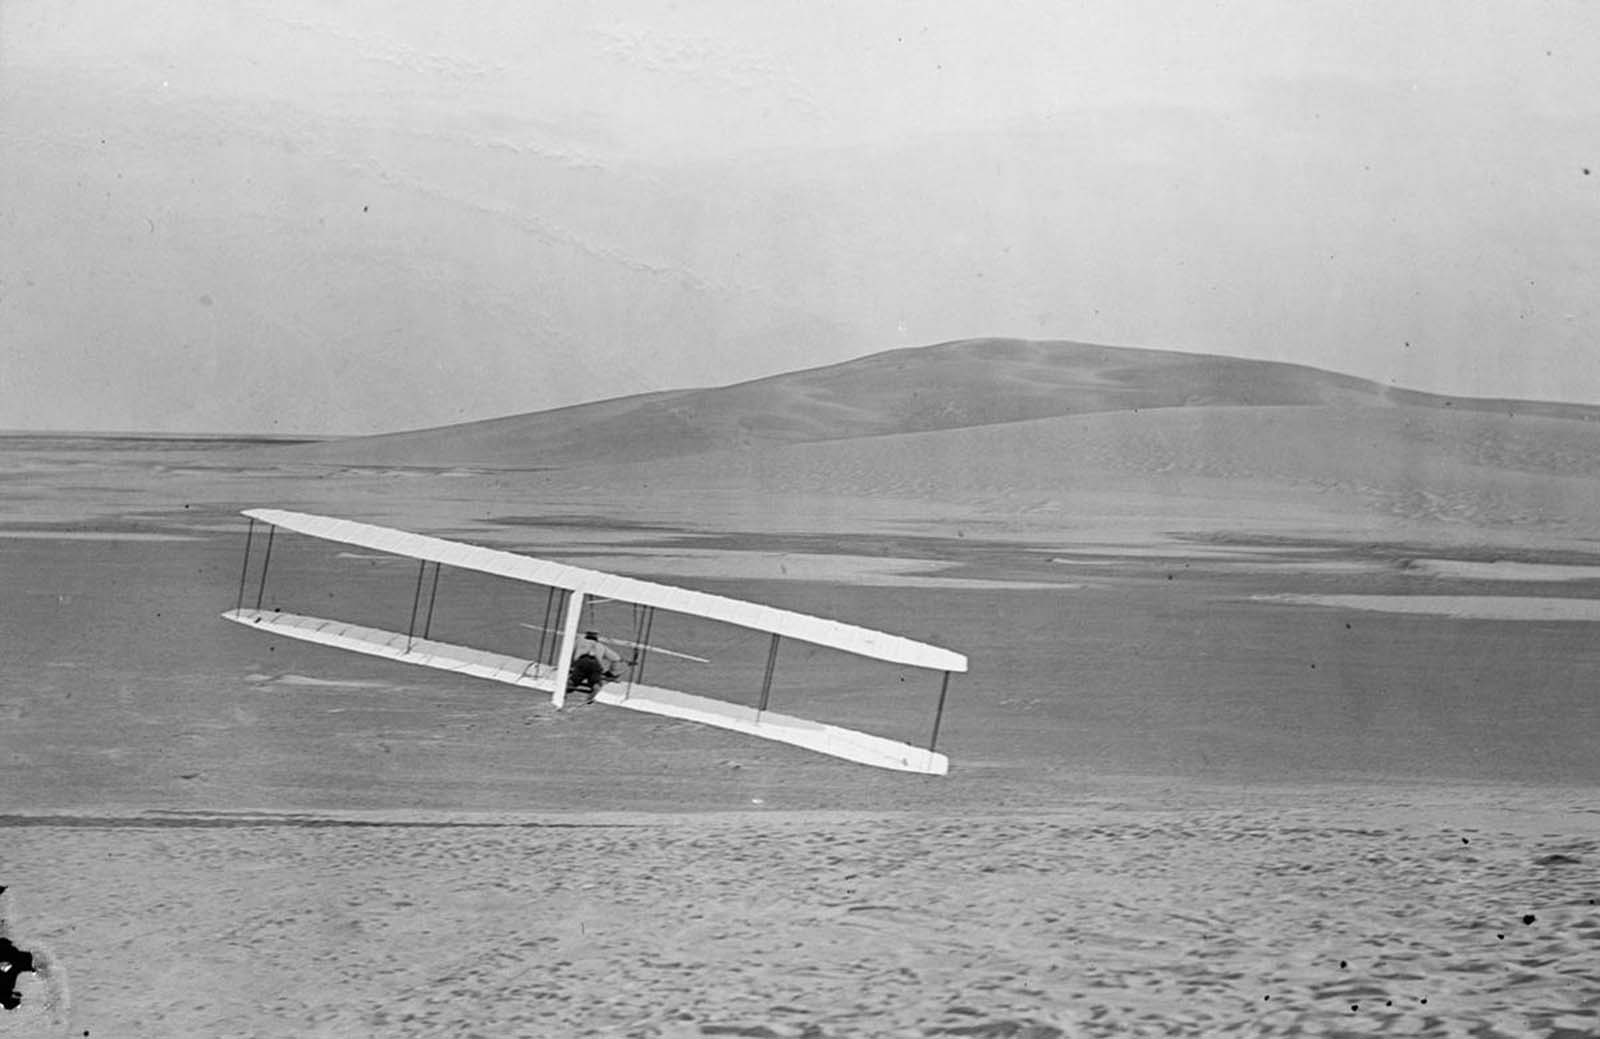 Rear view of Wilbur making a right turn in glide from No. 2 Hill, right wing tipped close to the ground, October 24, 1902.